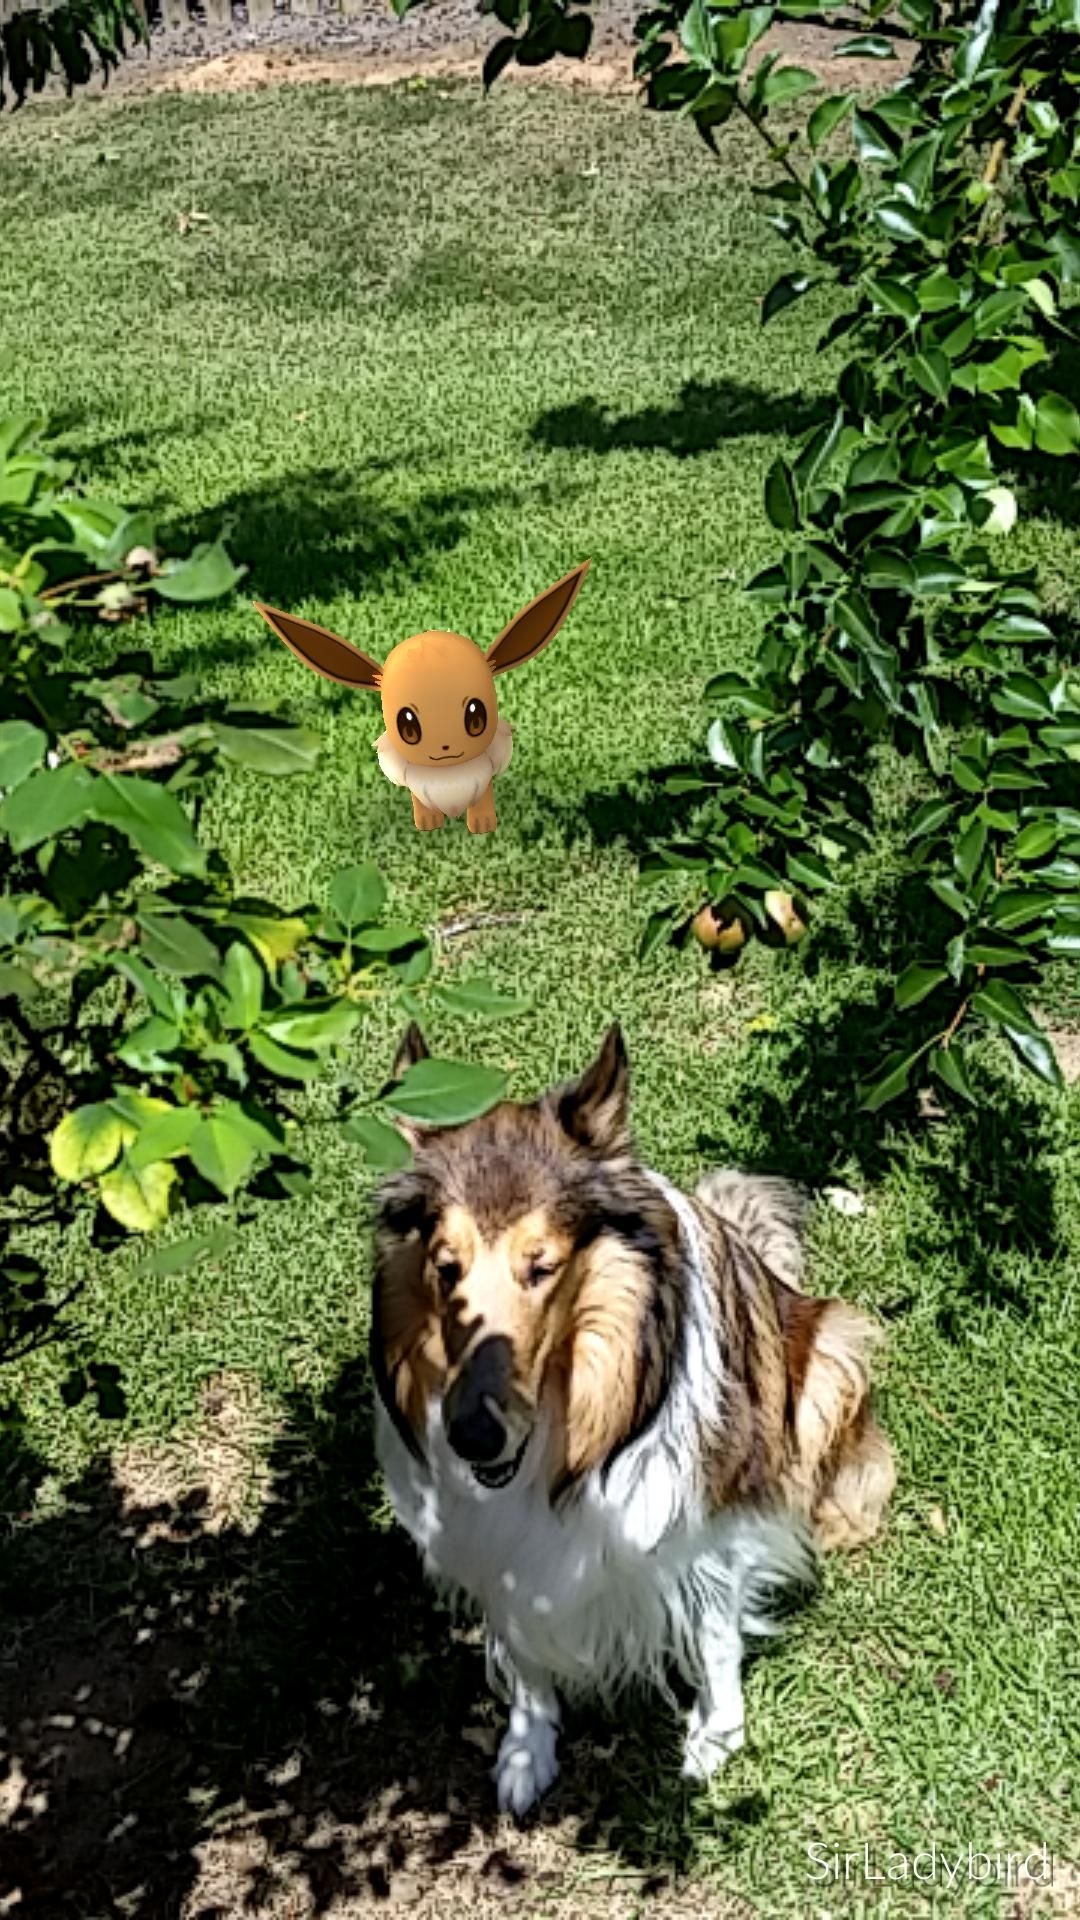 Eevee and shiny Eevee in the same location.